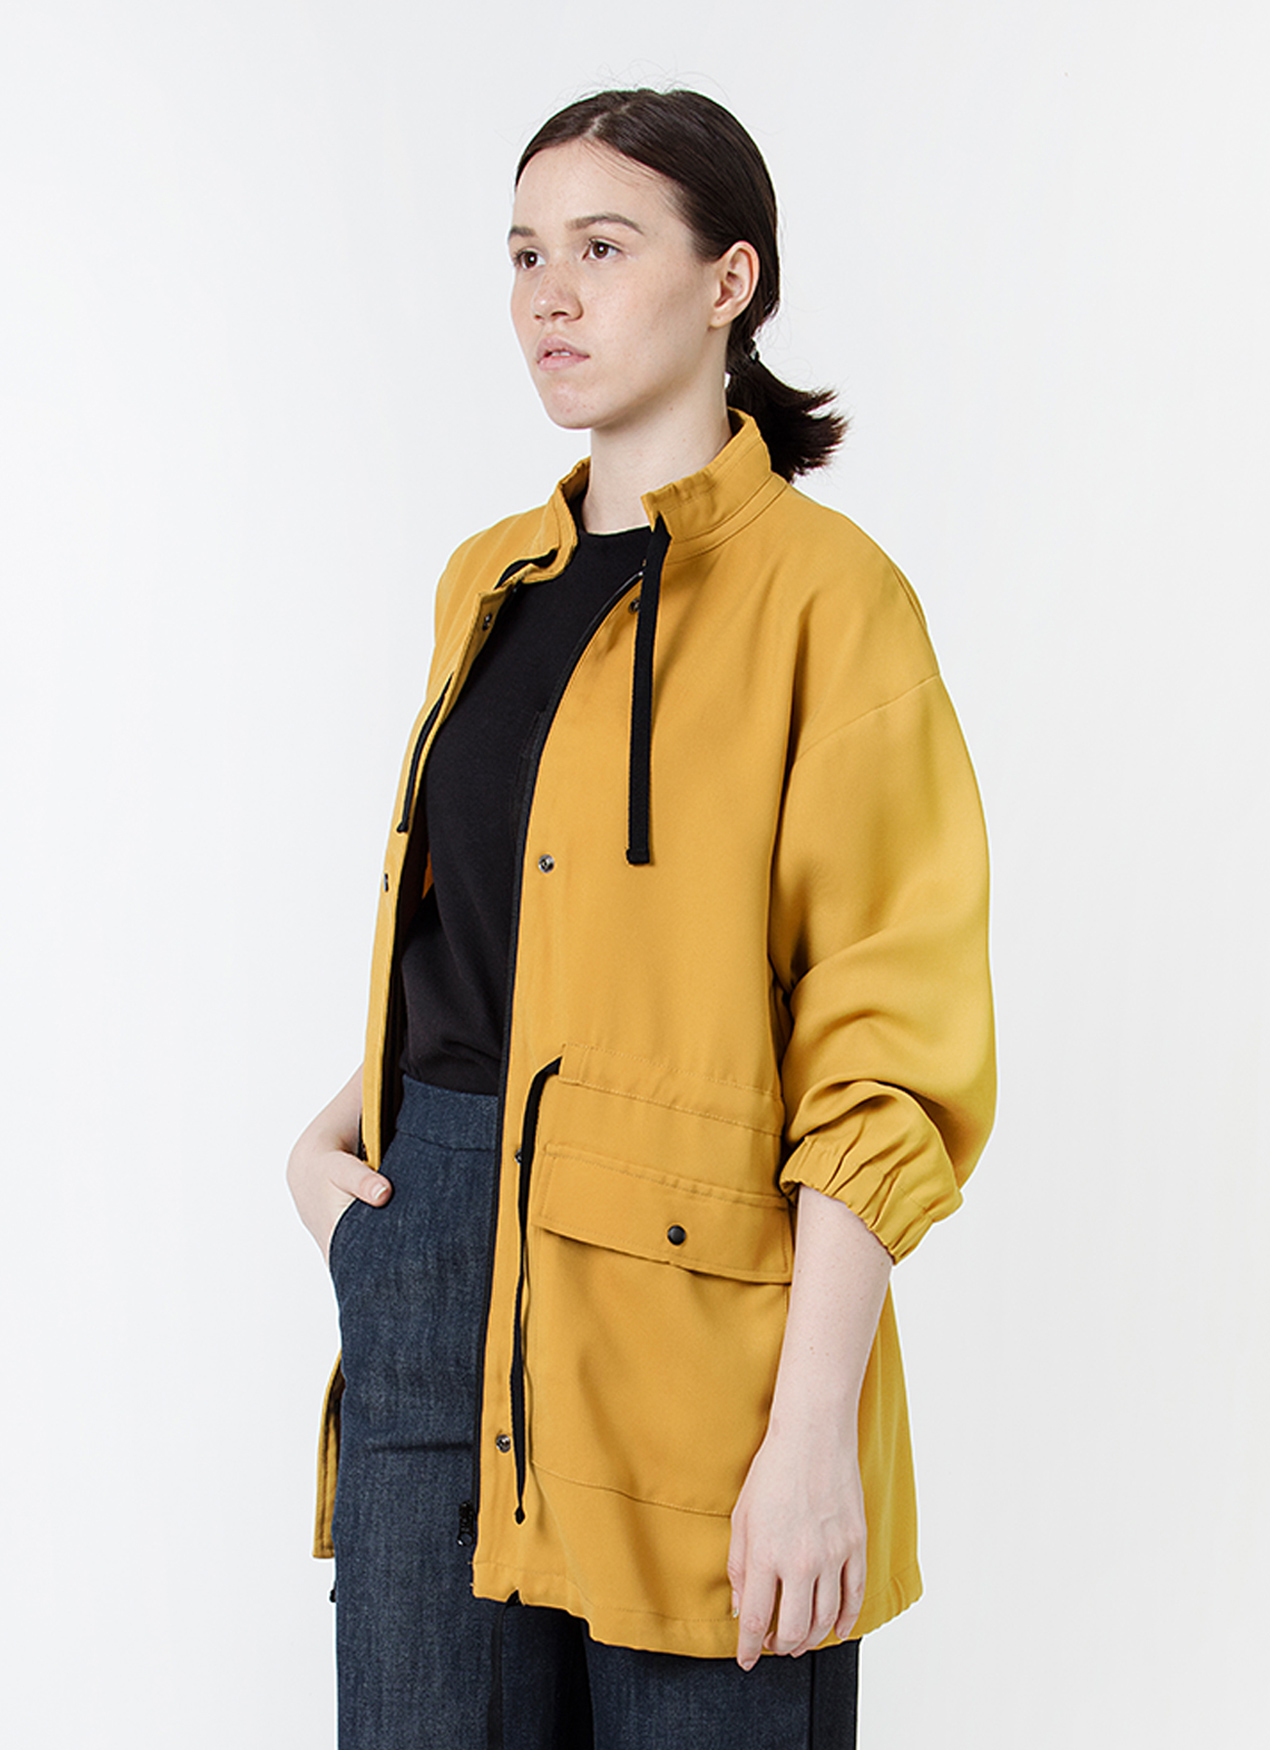 Wastu Soft Parka Jacket - Yellow